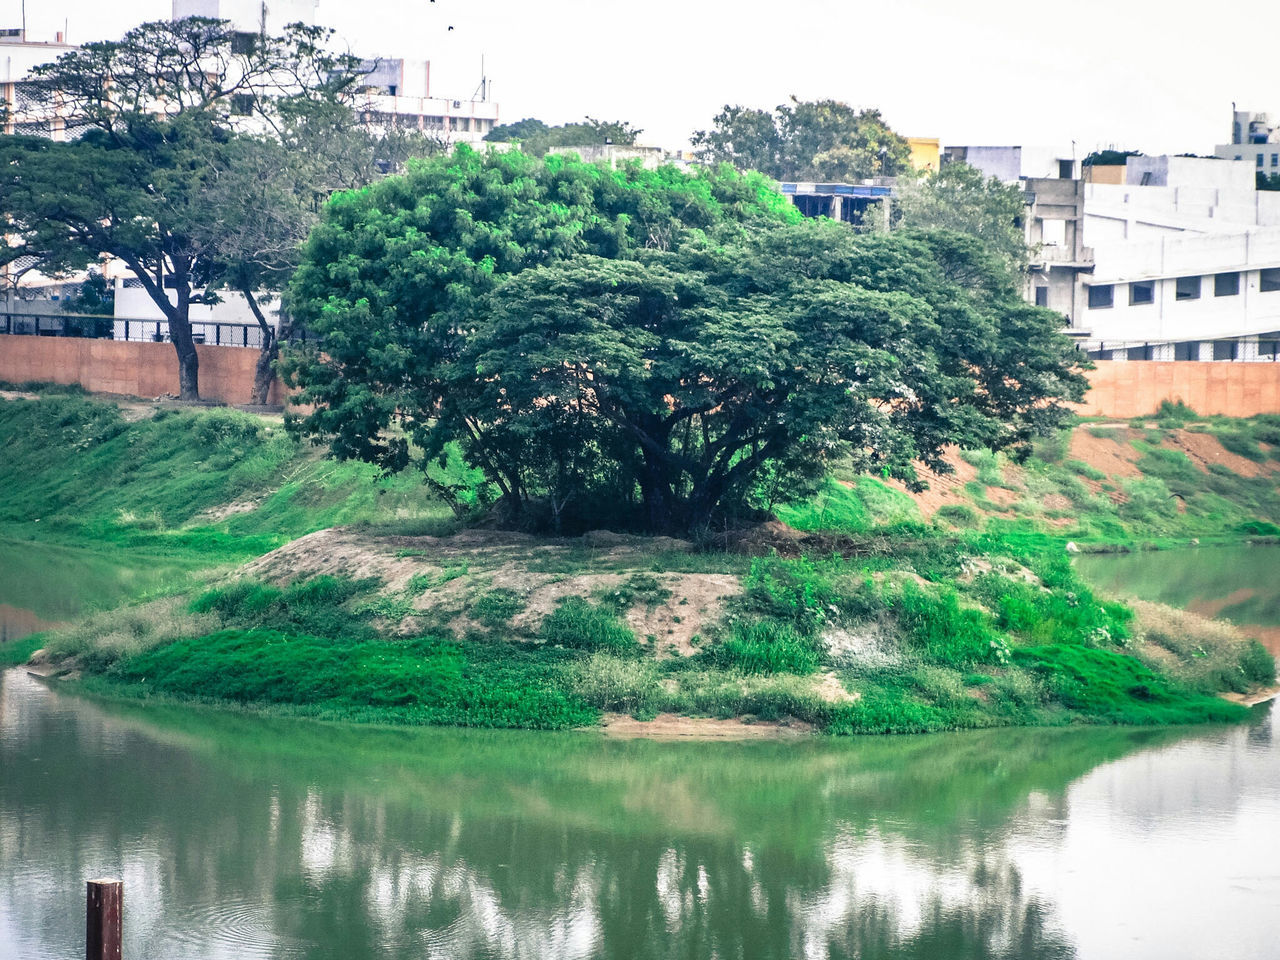 building exterior, architecture, built structure, tree, water, reflection, waterfront, outdoors, grass, no people, day, green color, city, plant, nature, sky